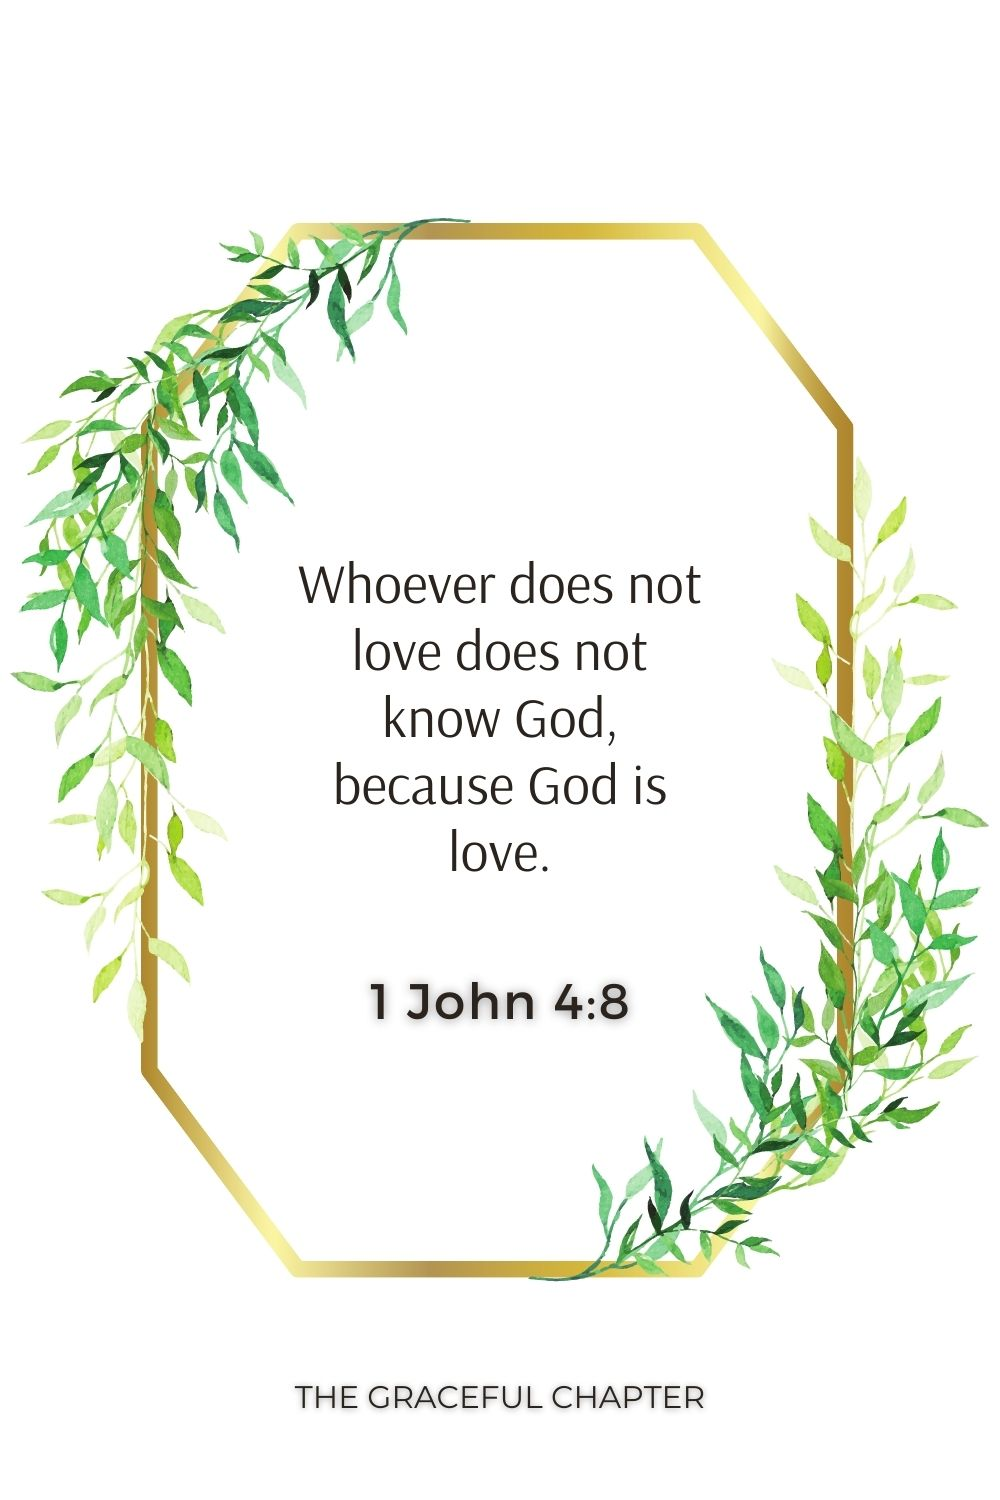 Whoever does not love does not know God, because God is love. 1 John 4:8